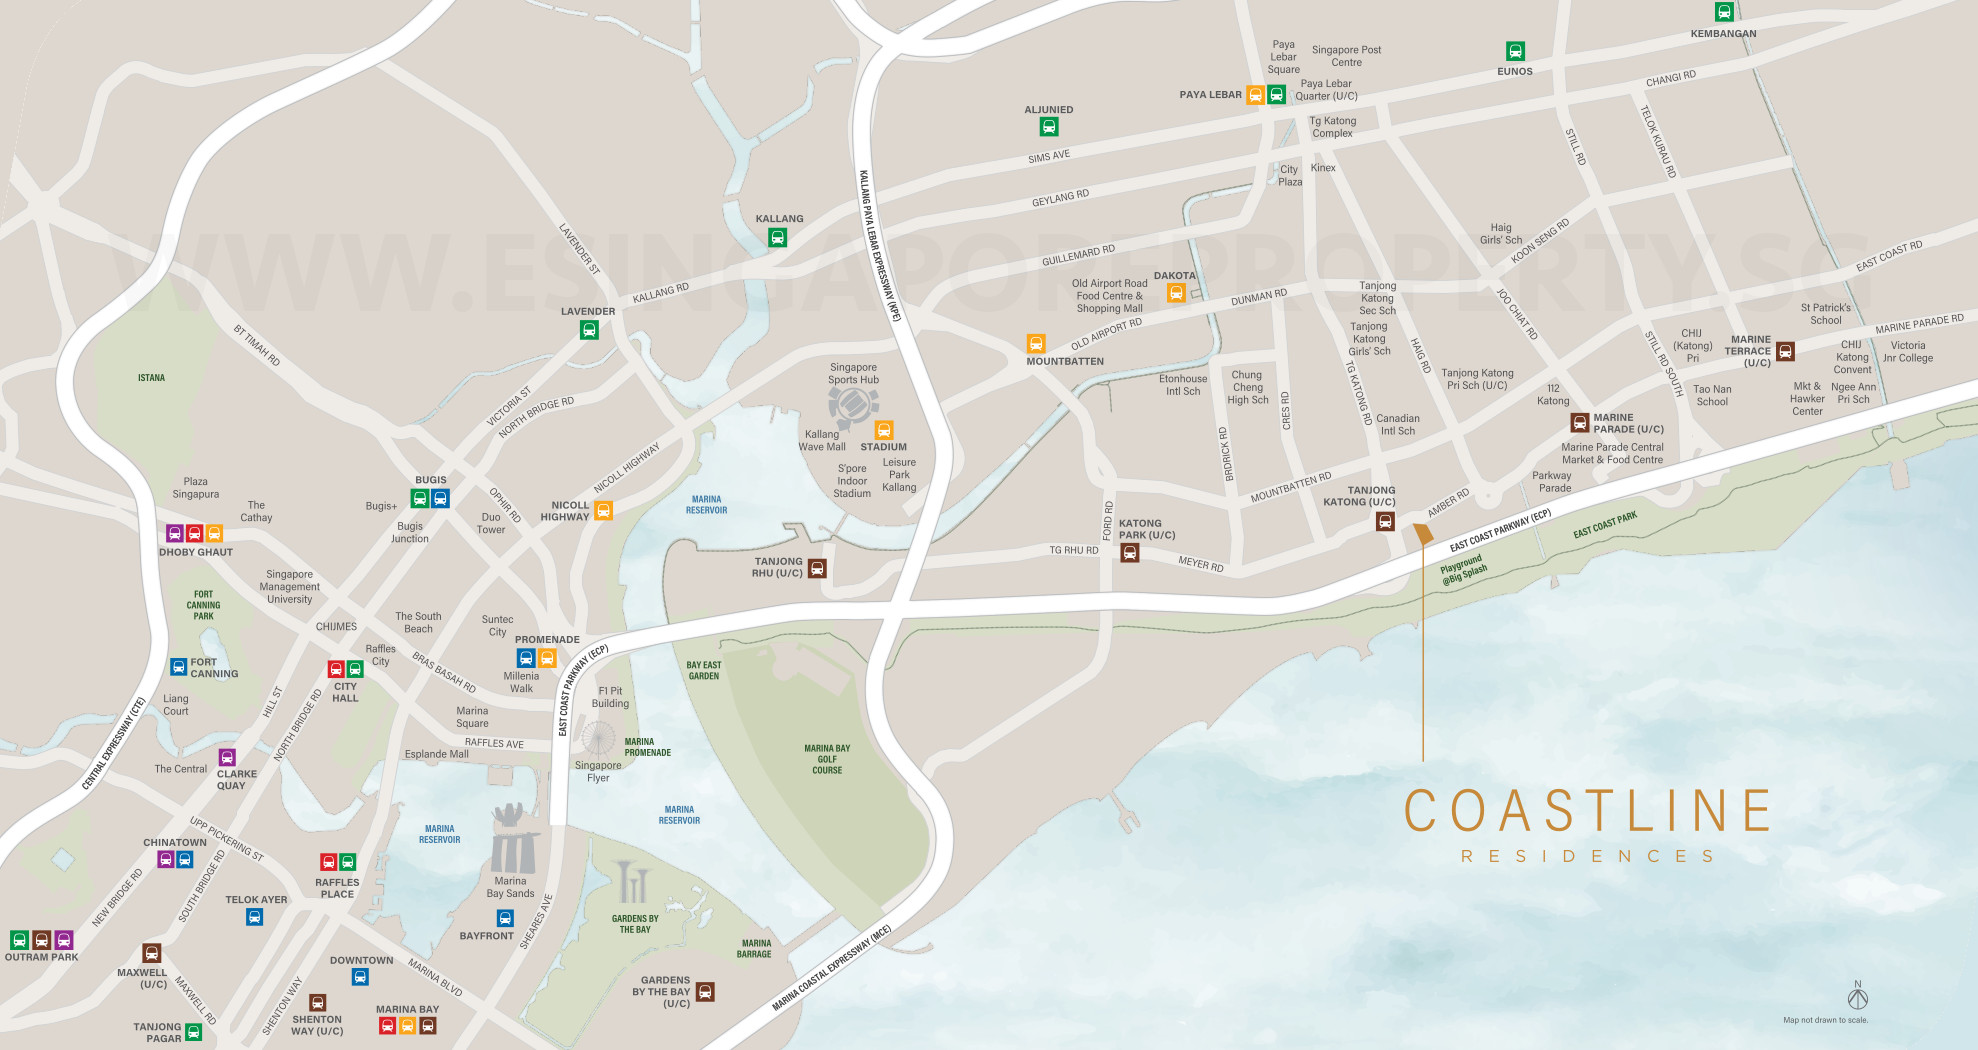 Coastline Residences Location Map and Amenities